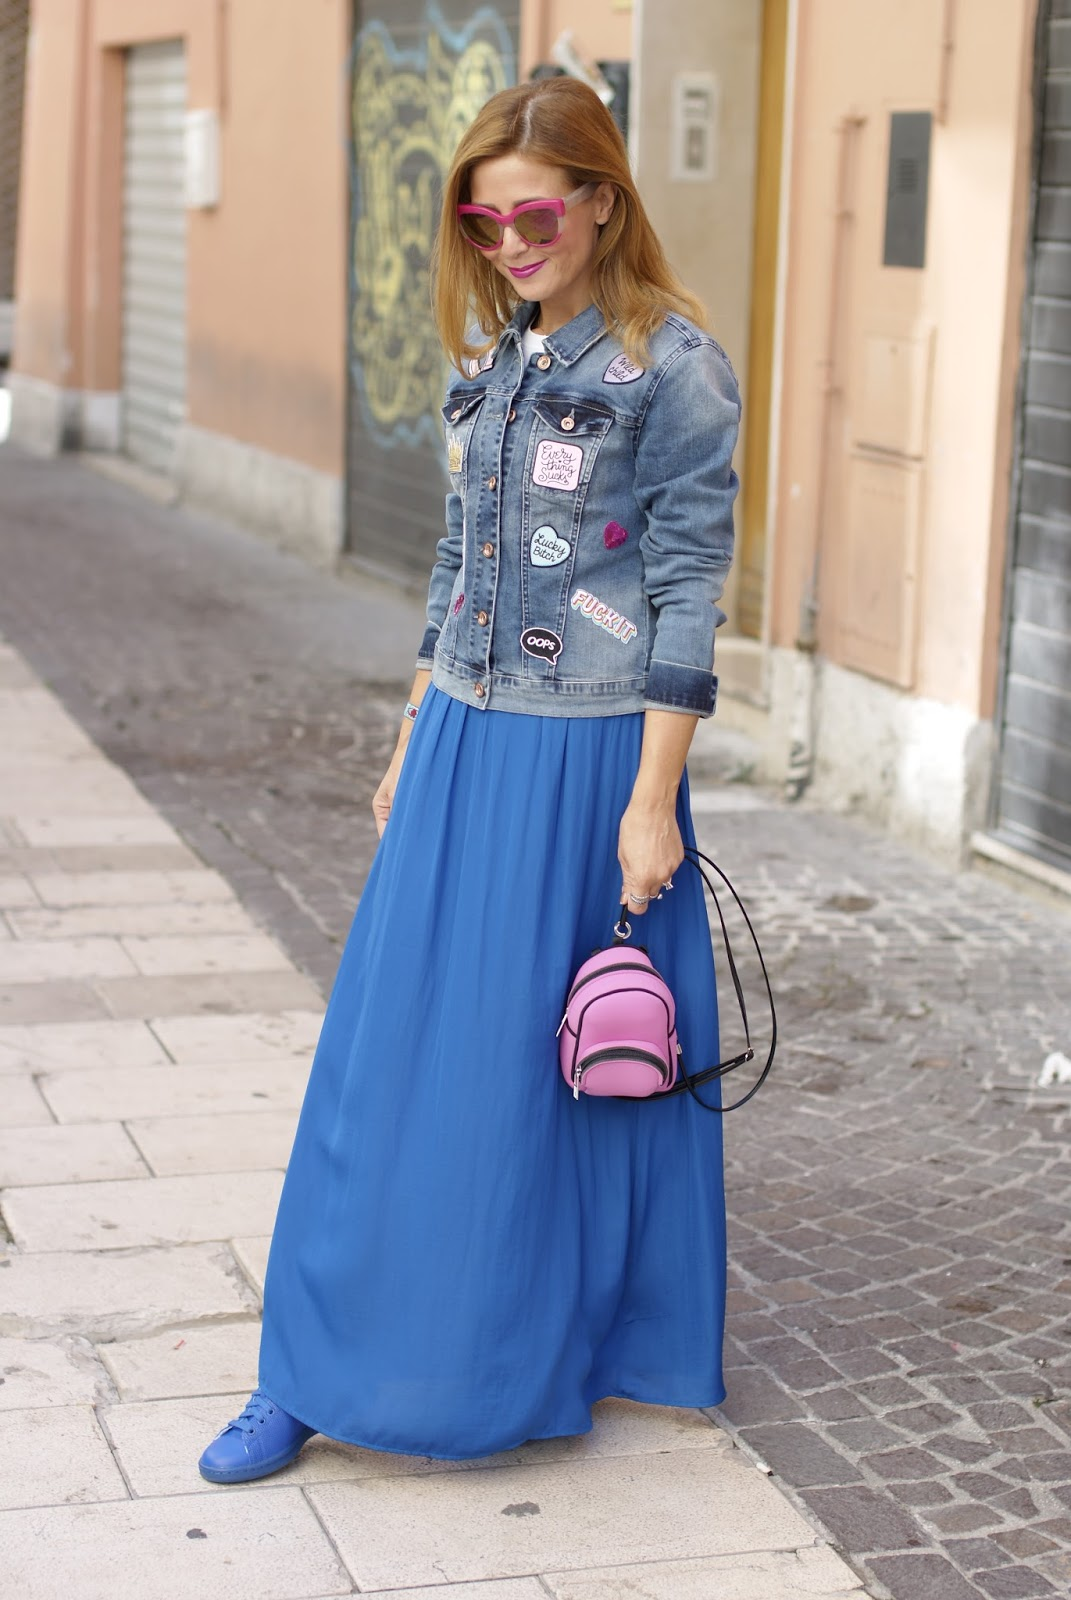 Denim jacket with patches and blue maxi skirt worn with sneakers on Fashion and Cookies fashion blog, fashion blogger style